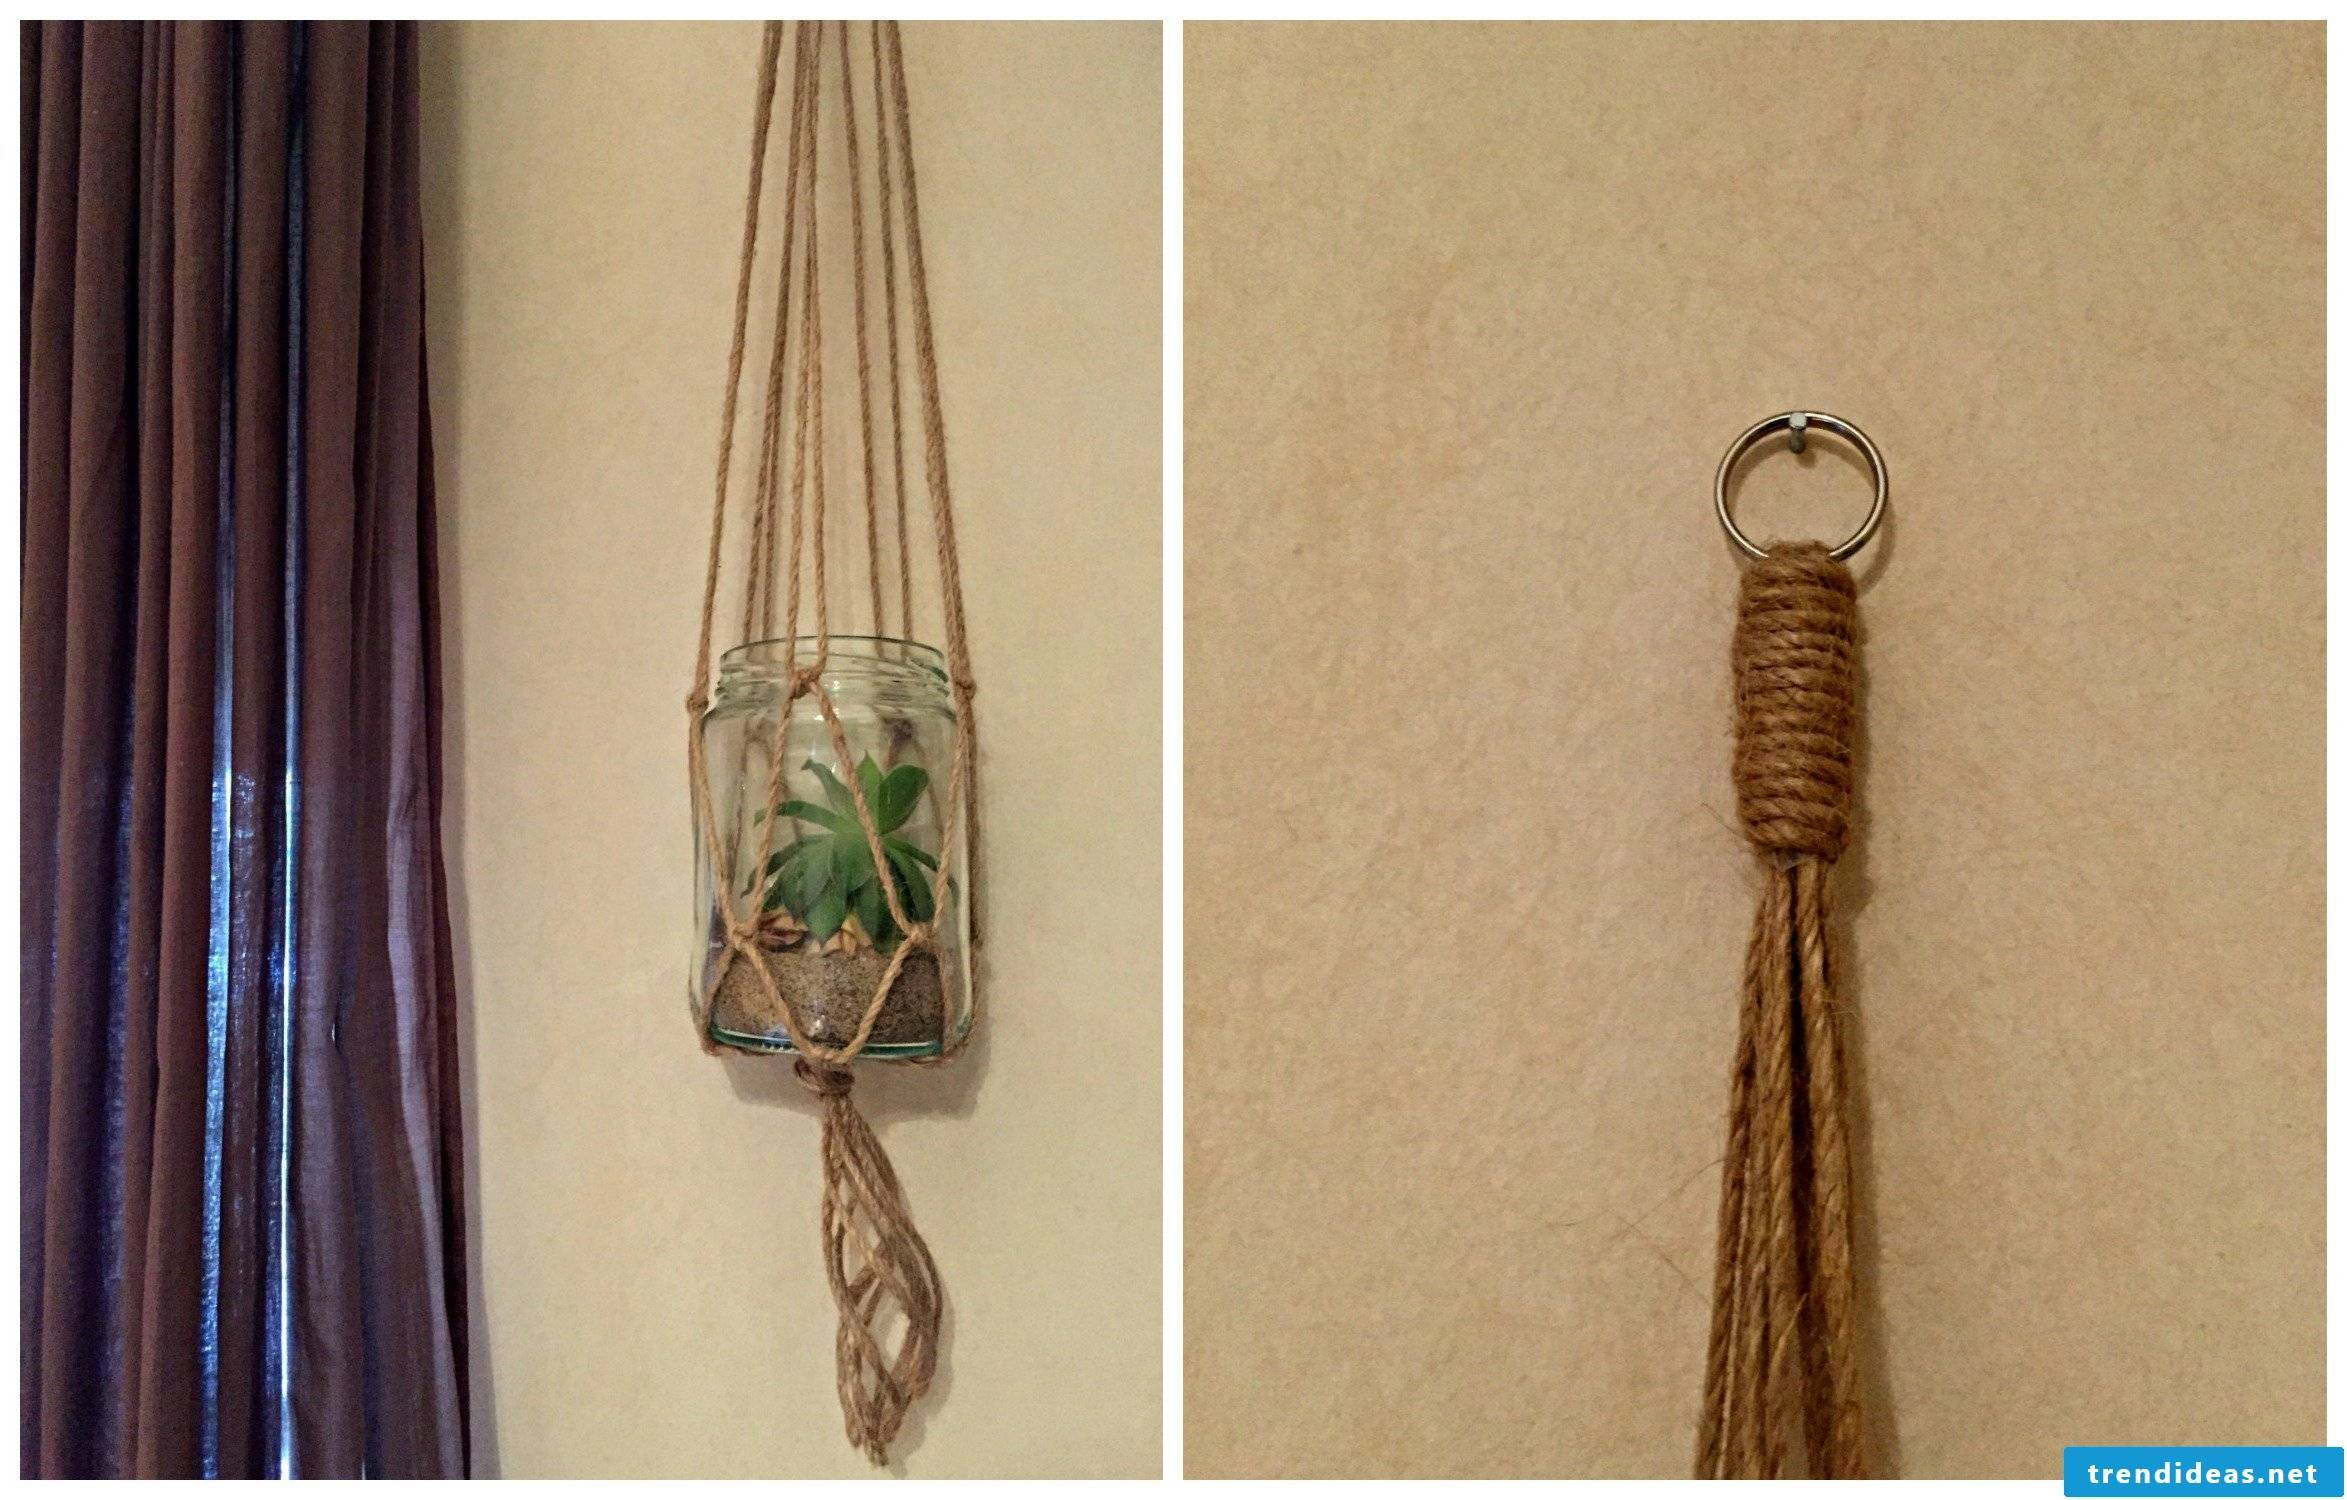 Macrame - a knotting technique from the Orient | Best Trend ideas